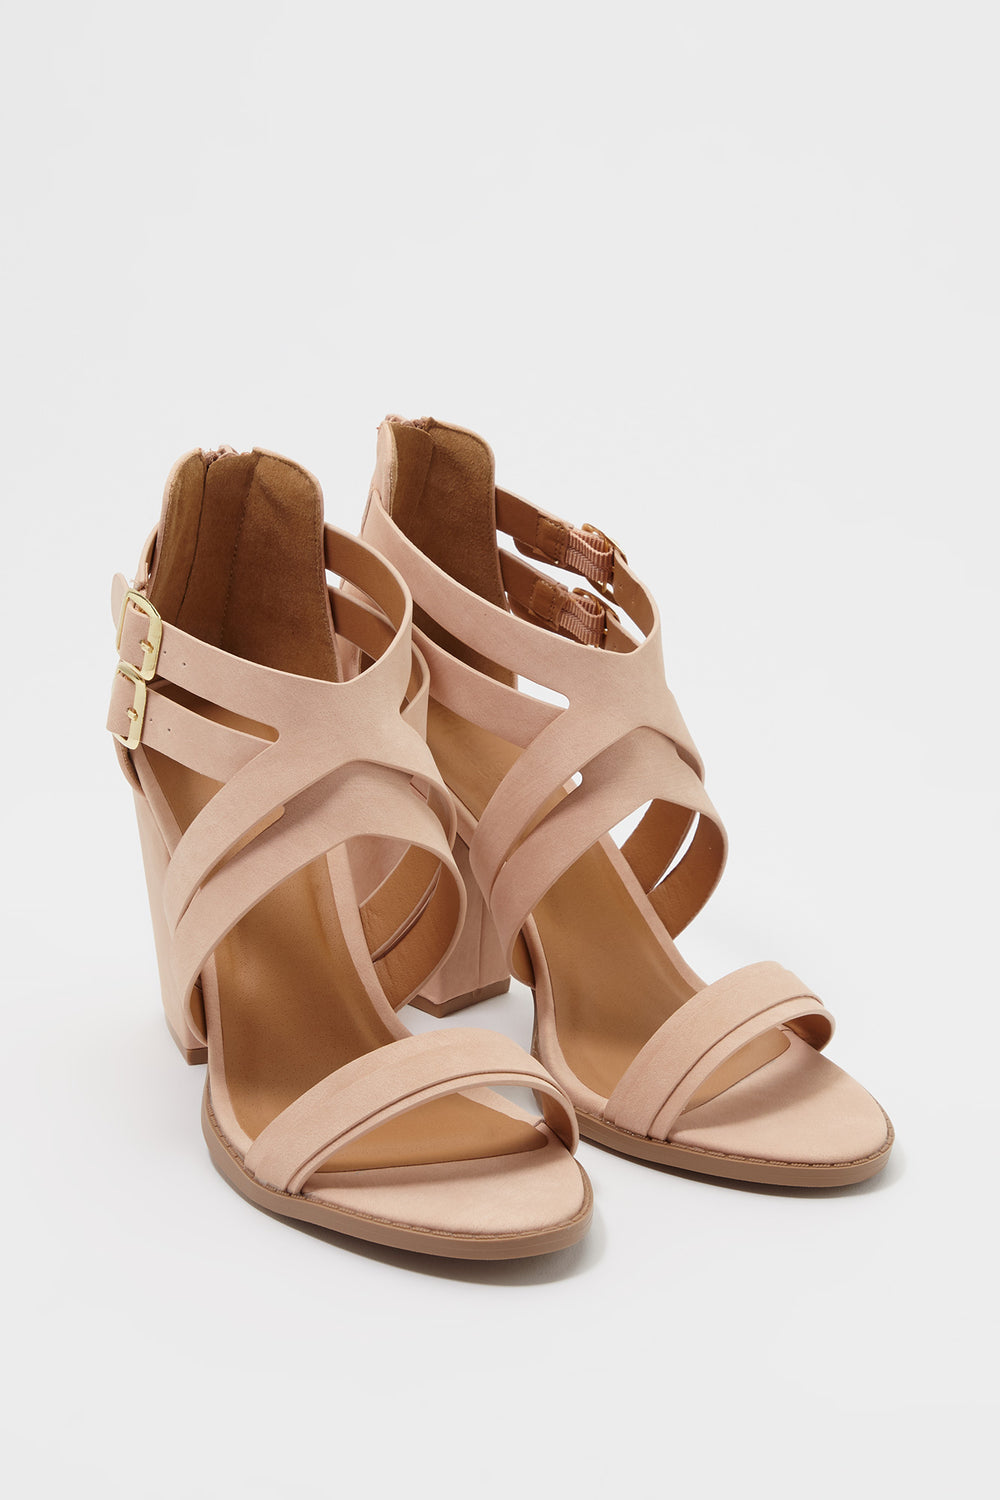 Double Strap Block Heel Sandal Natural